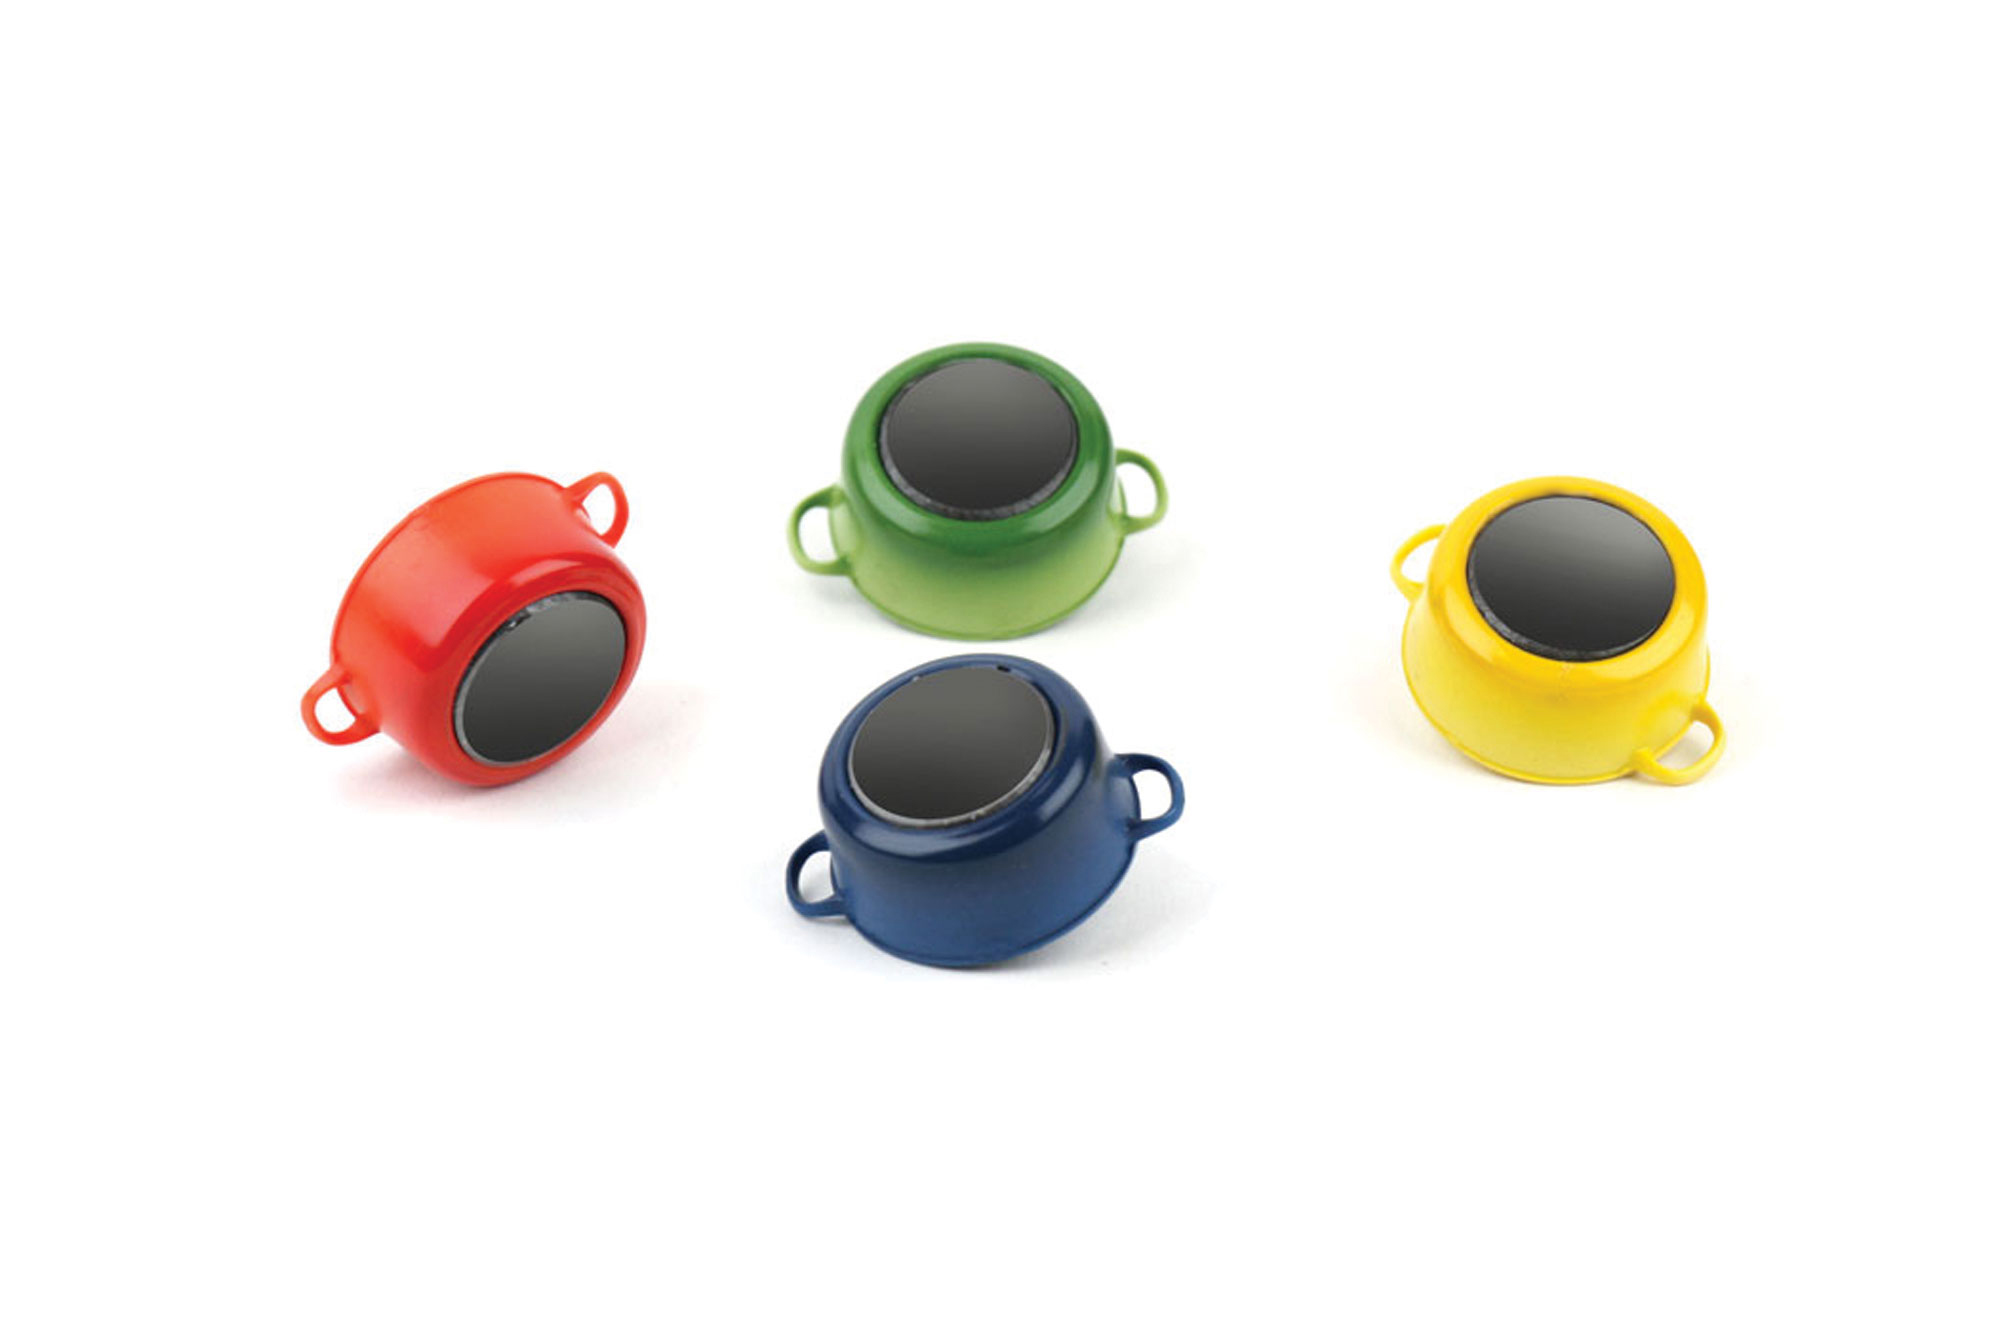 Le Creuset Mini Dutch Oven Magnets 4 Pack Cutlery And More